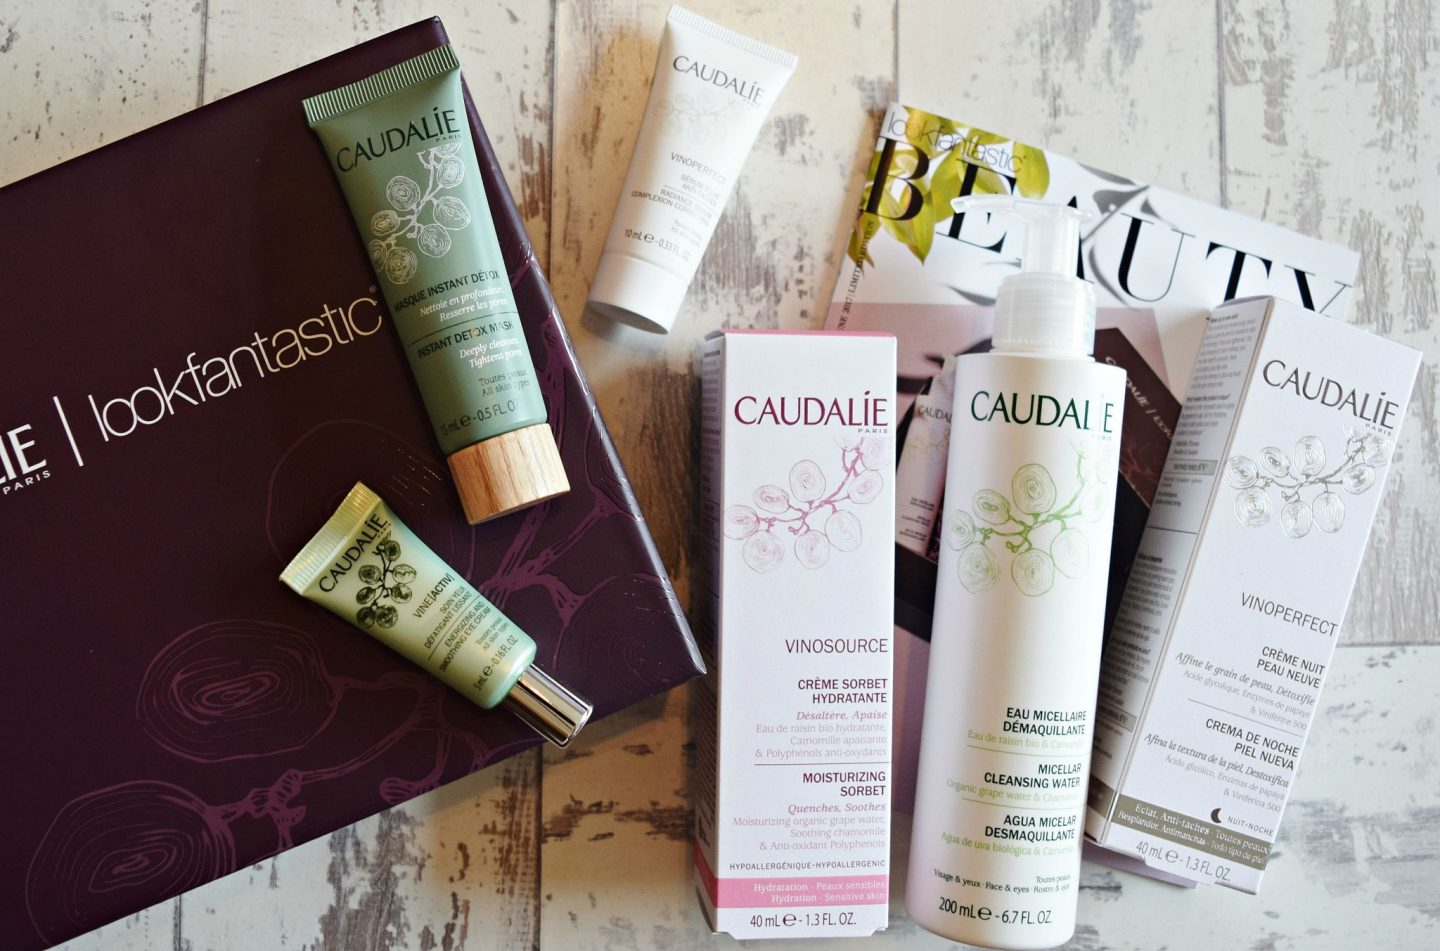 look fantastic caudalie limited edition box